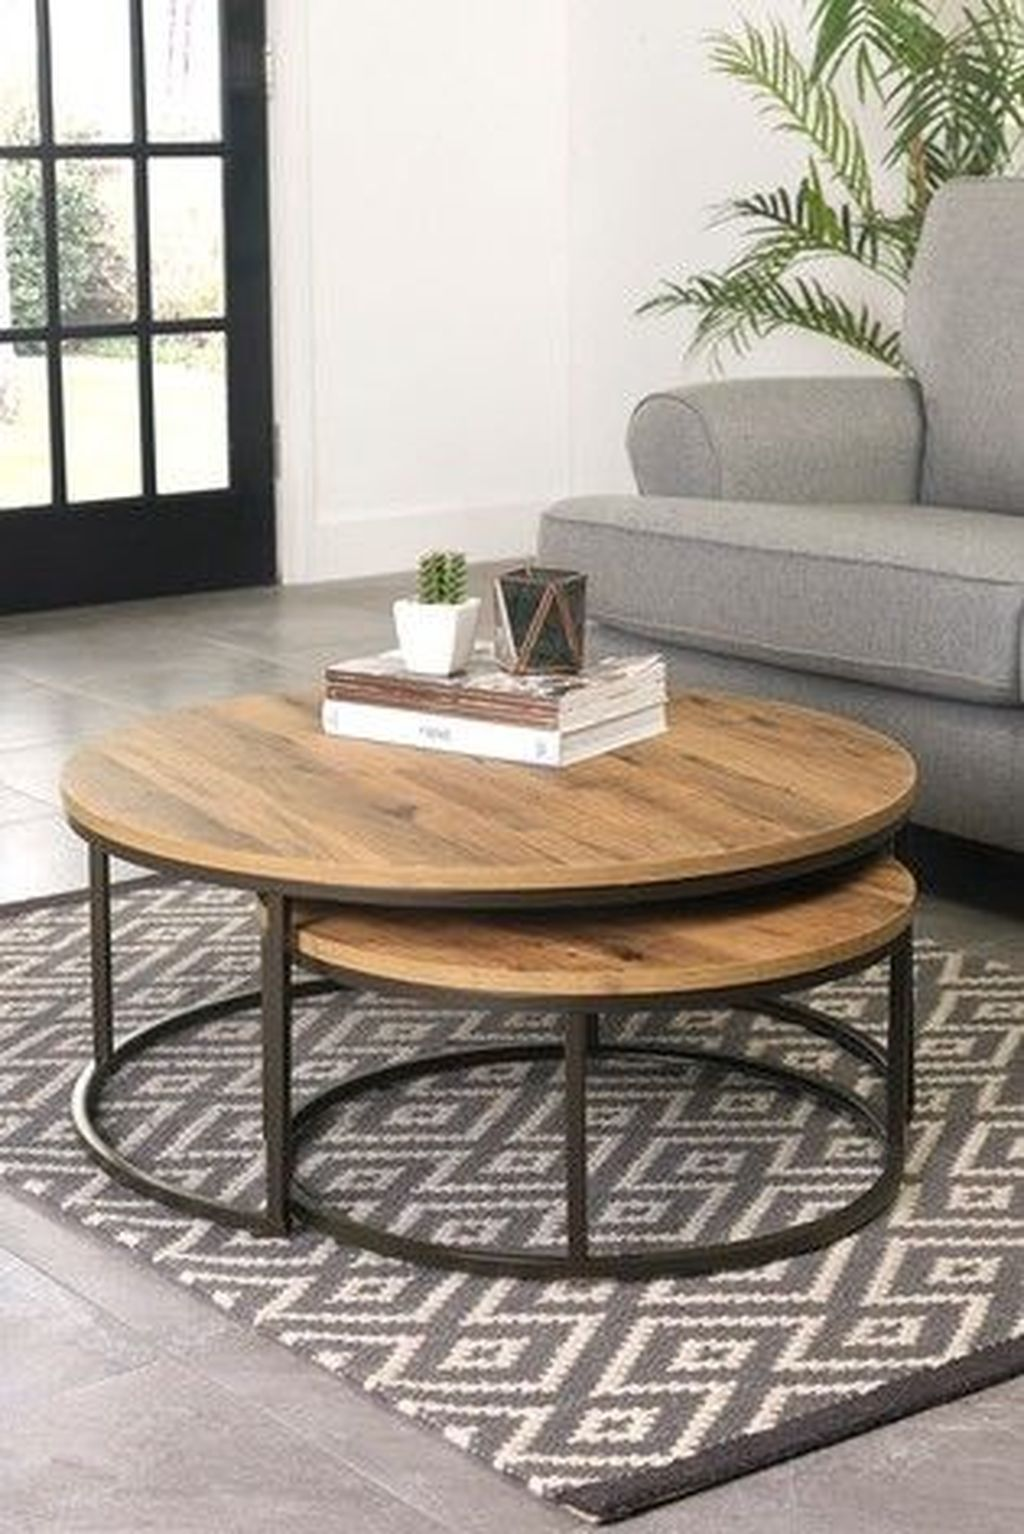 47 Inspiring Coffee Tables Decor Ideas To Copy Right Now Modern Coffee Table Decor Coffee Table Living Room Coffee Table